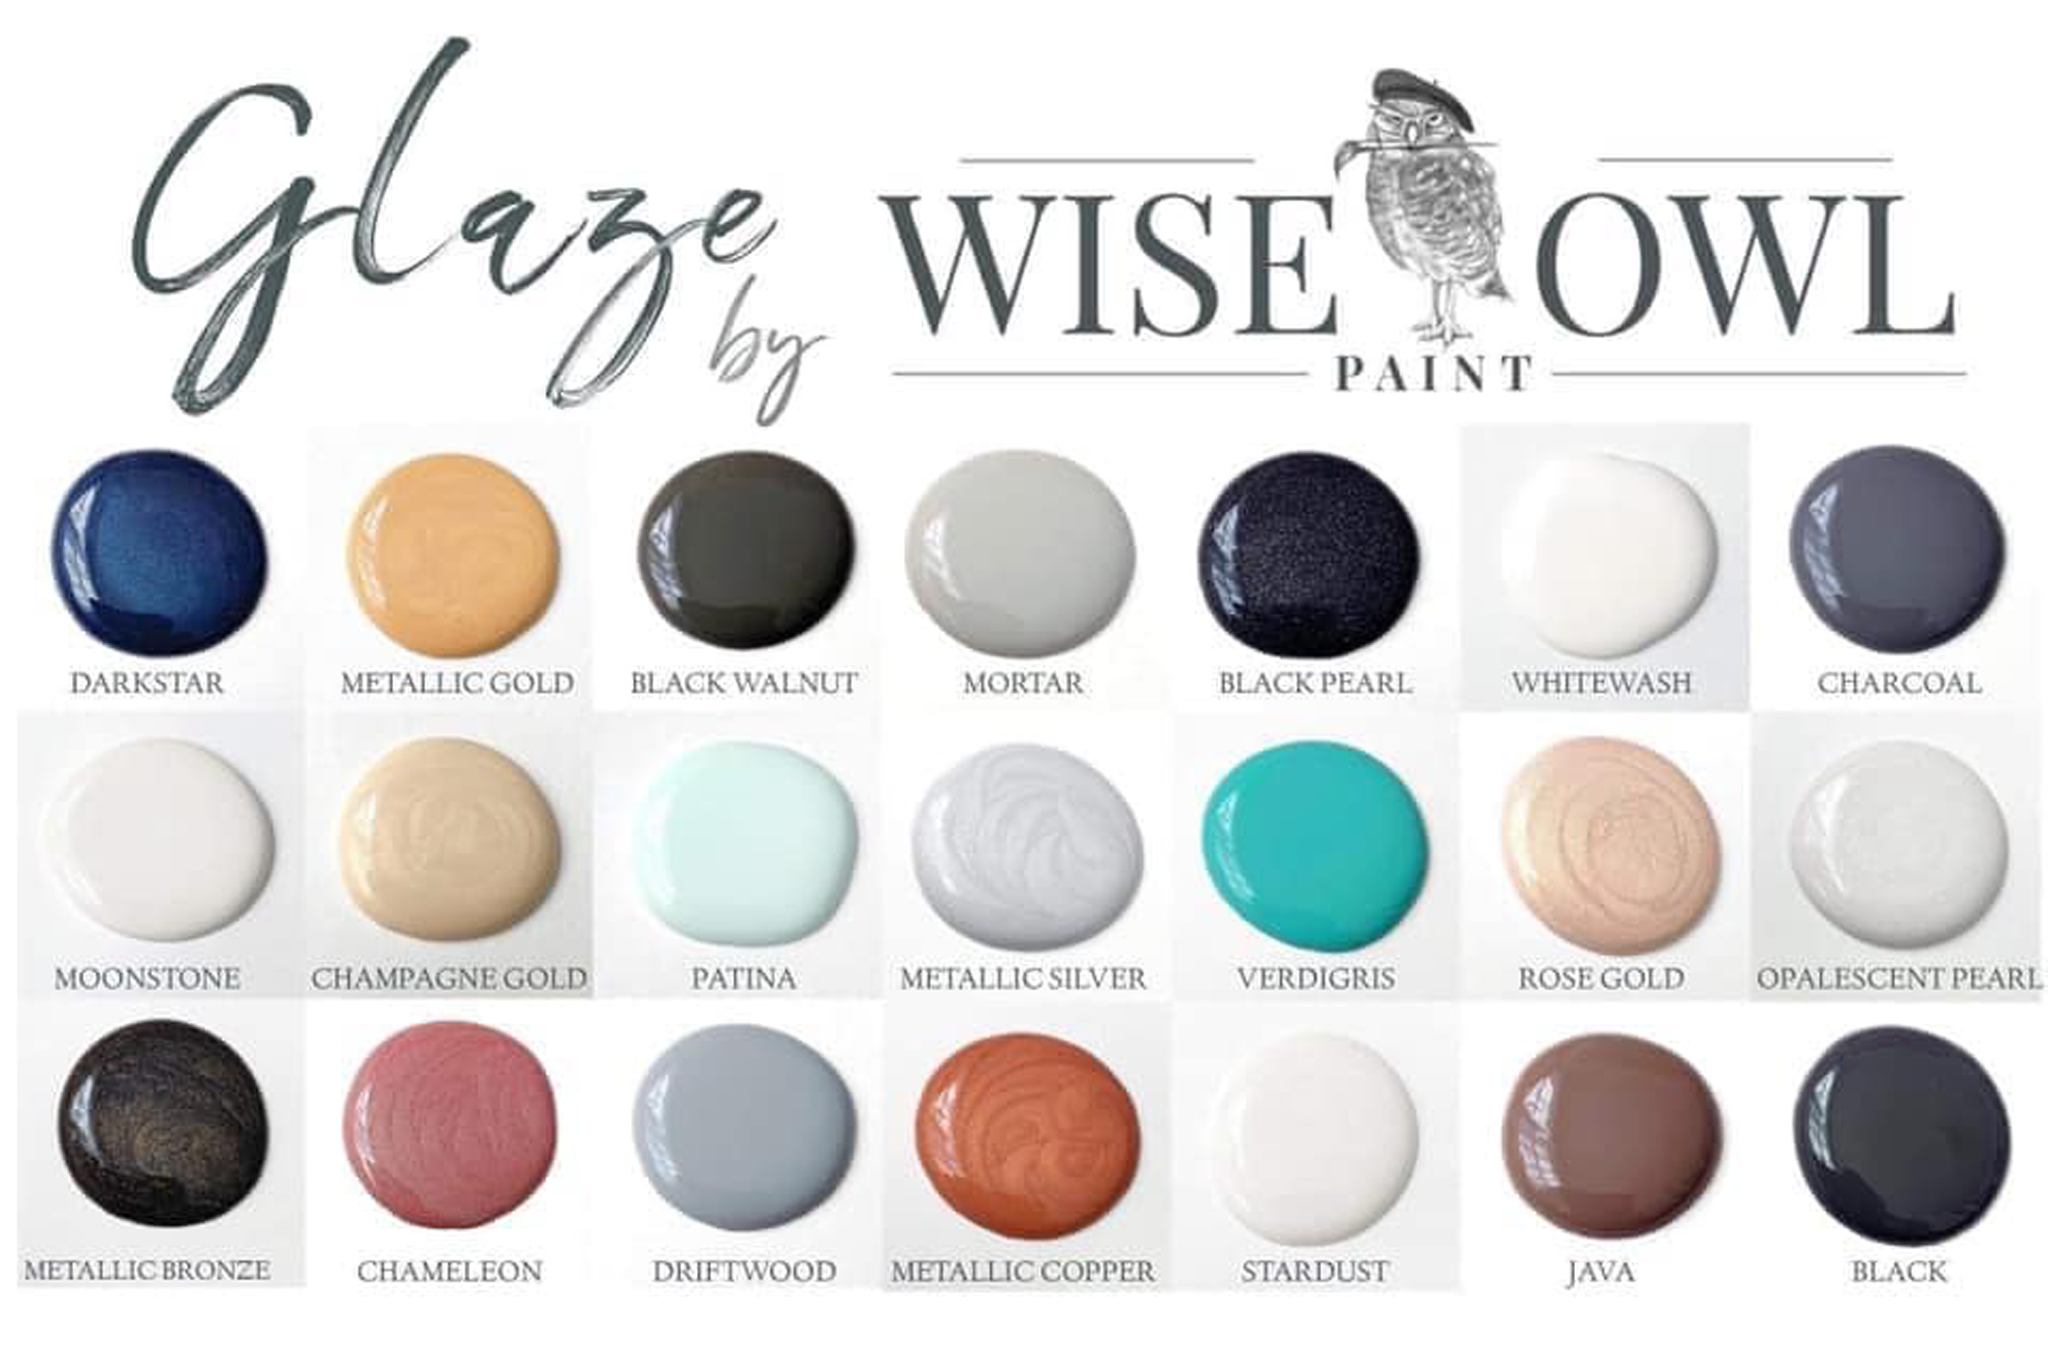 Wise Owl Paint Glaze color chart. Available at zacs4you.com